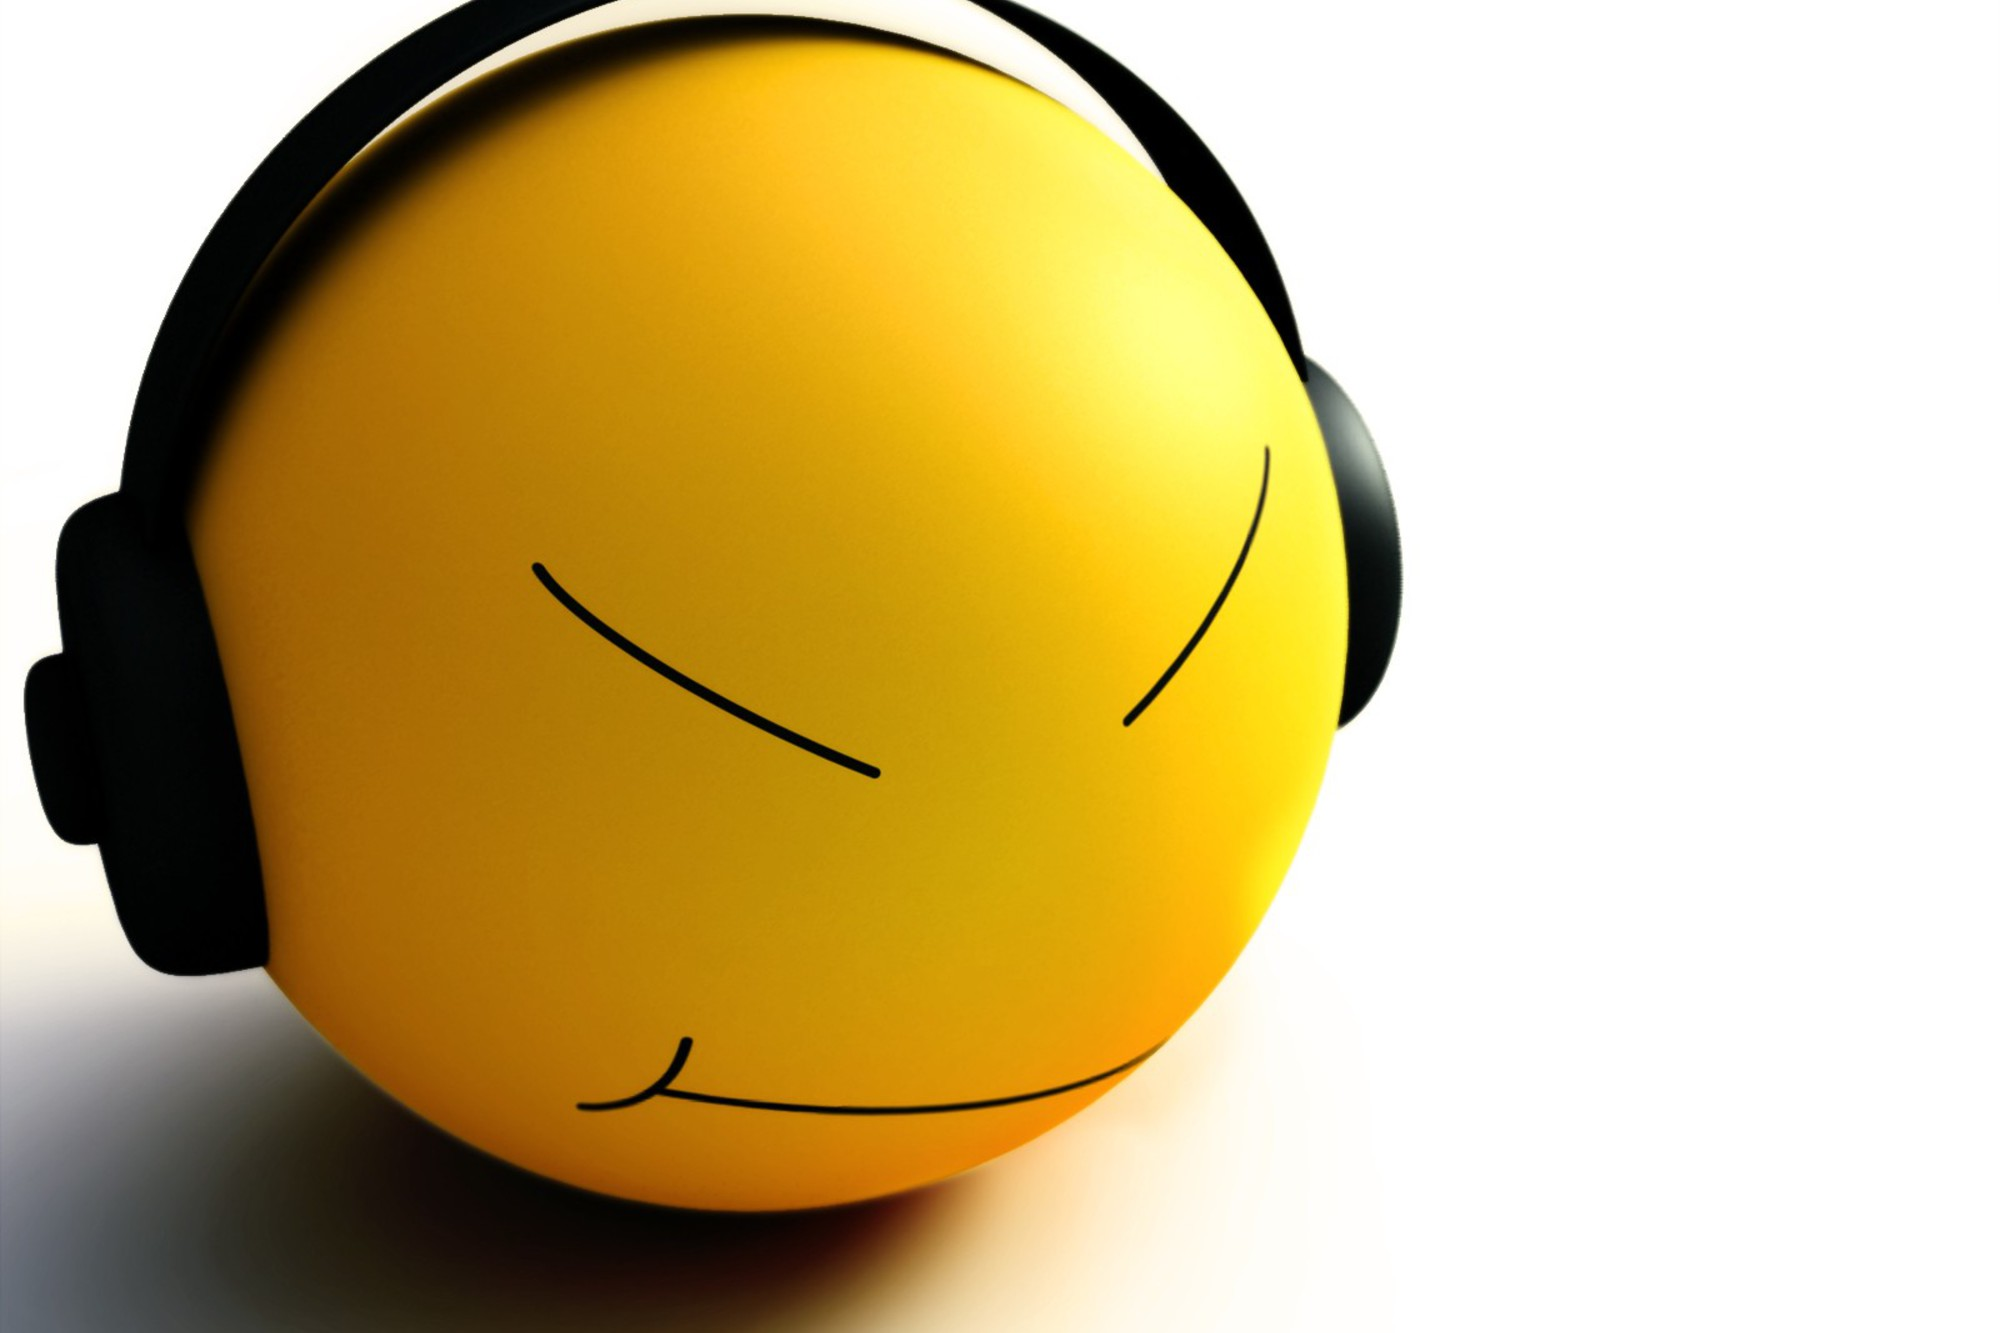 Smiley Music Wallpaper